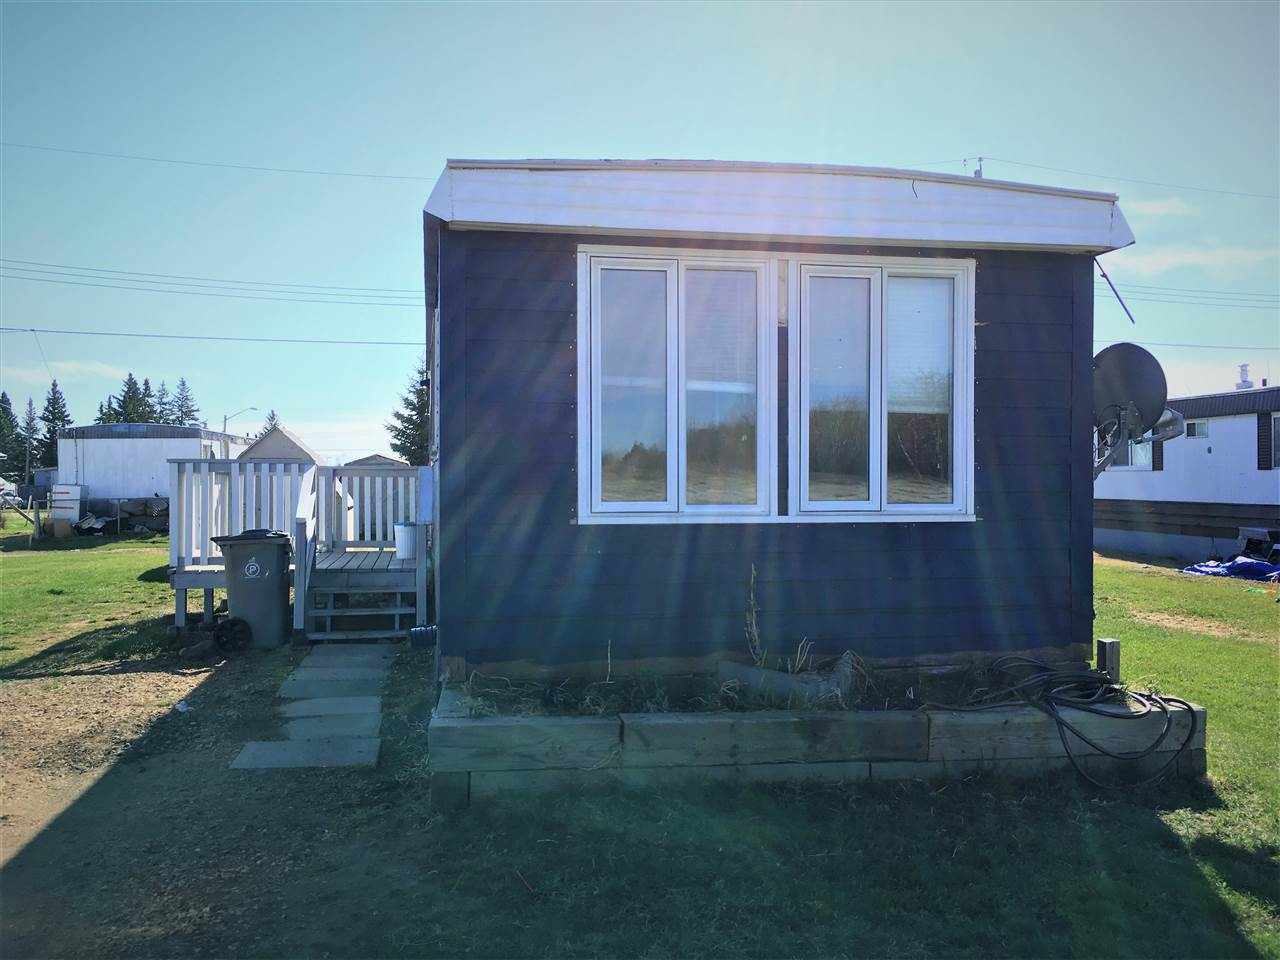 Main Photo: 5307 54 Street: Clyde Mobile for sale : MLS®# E4110024